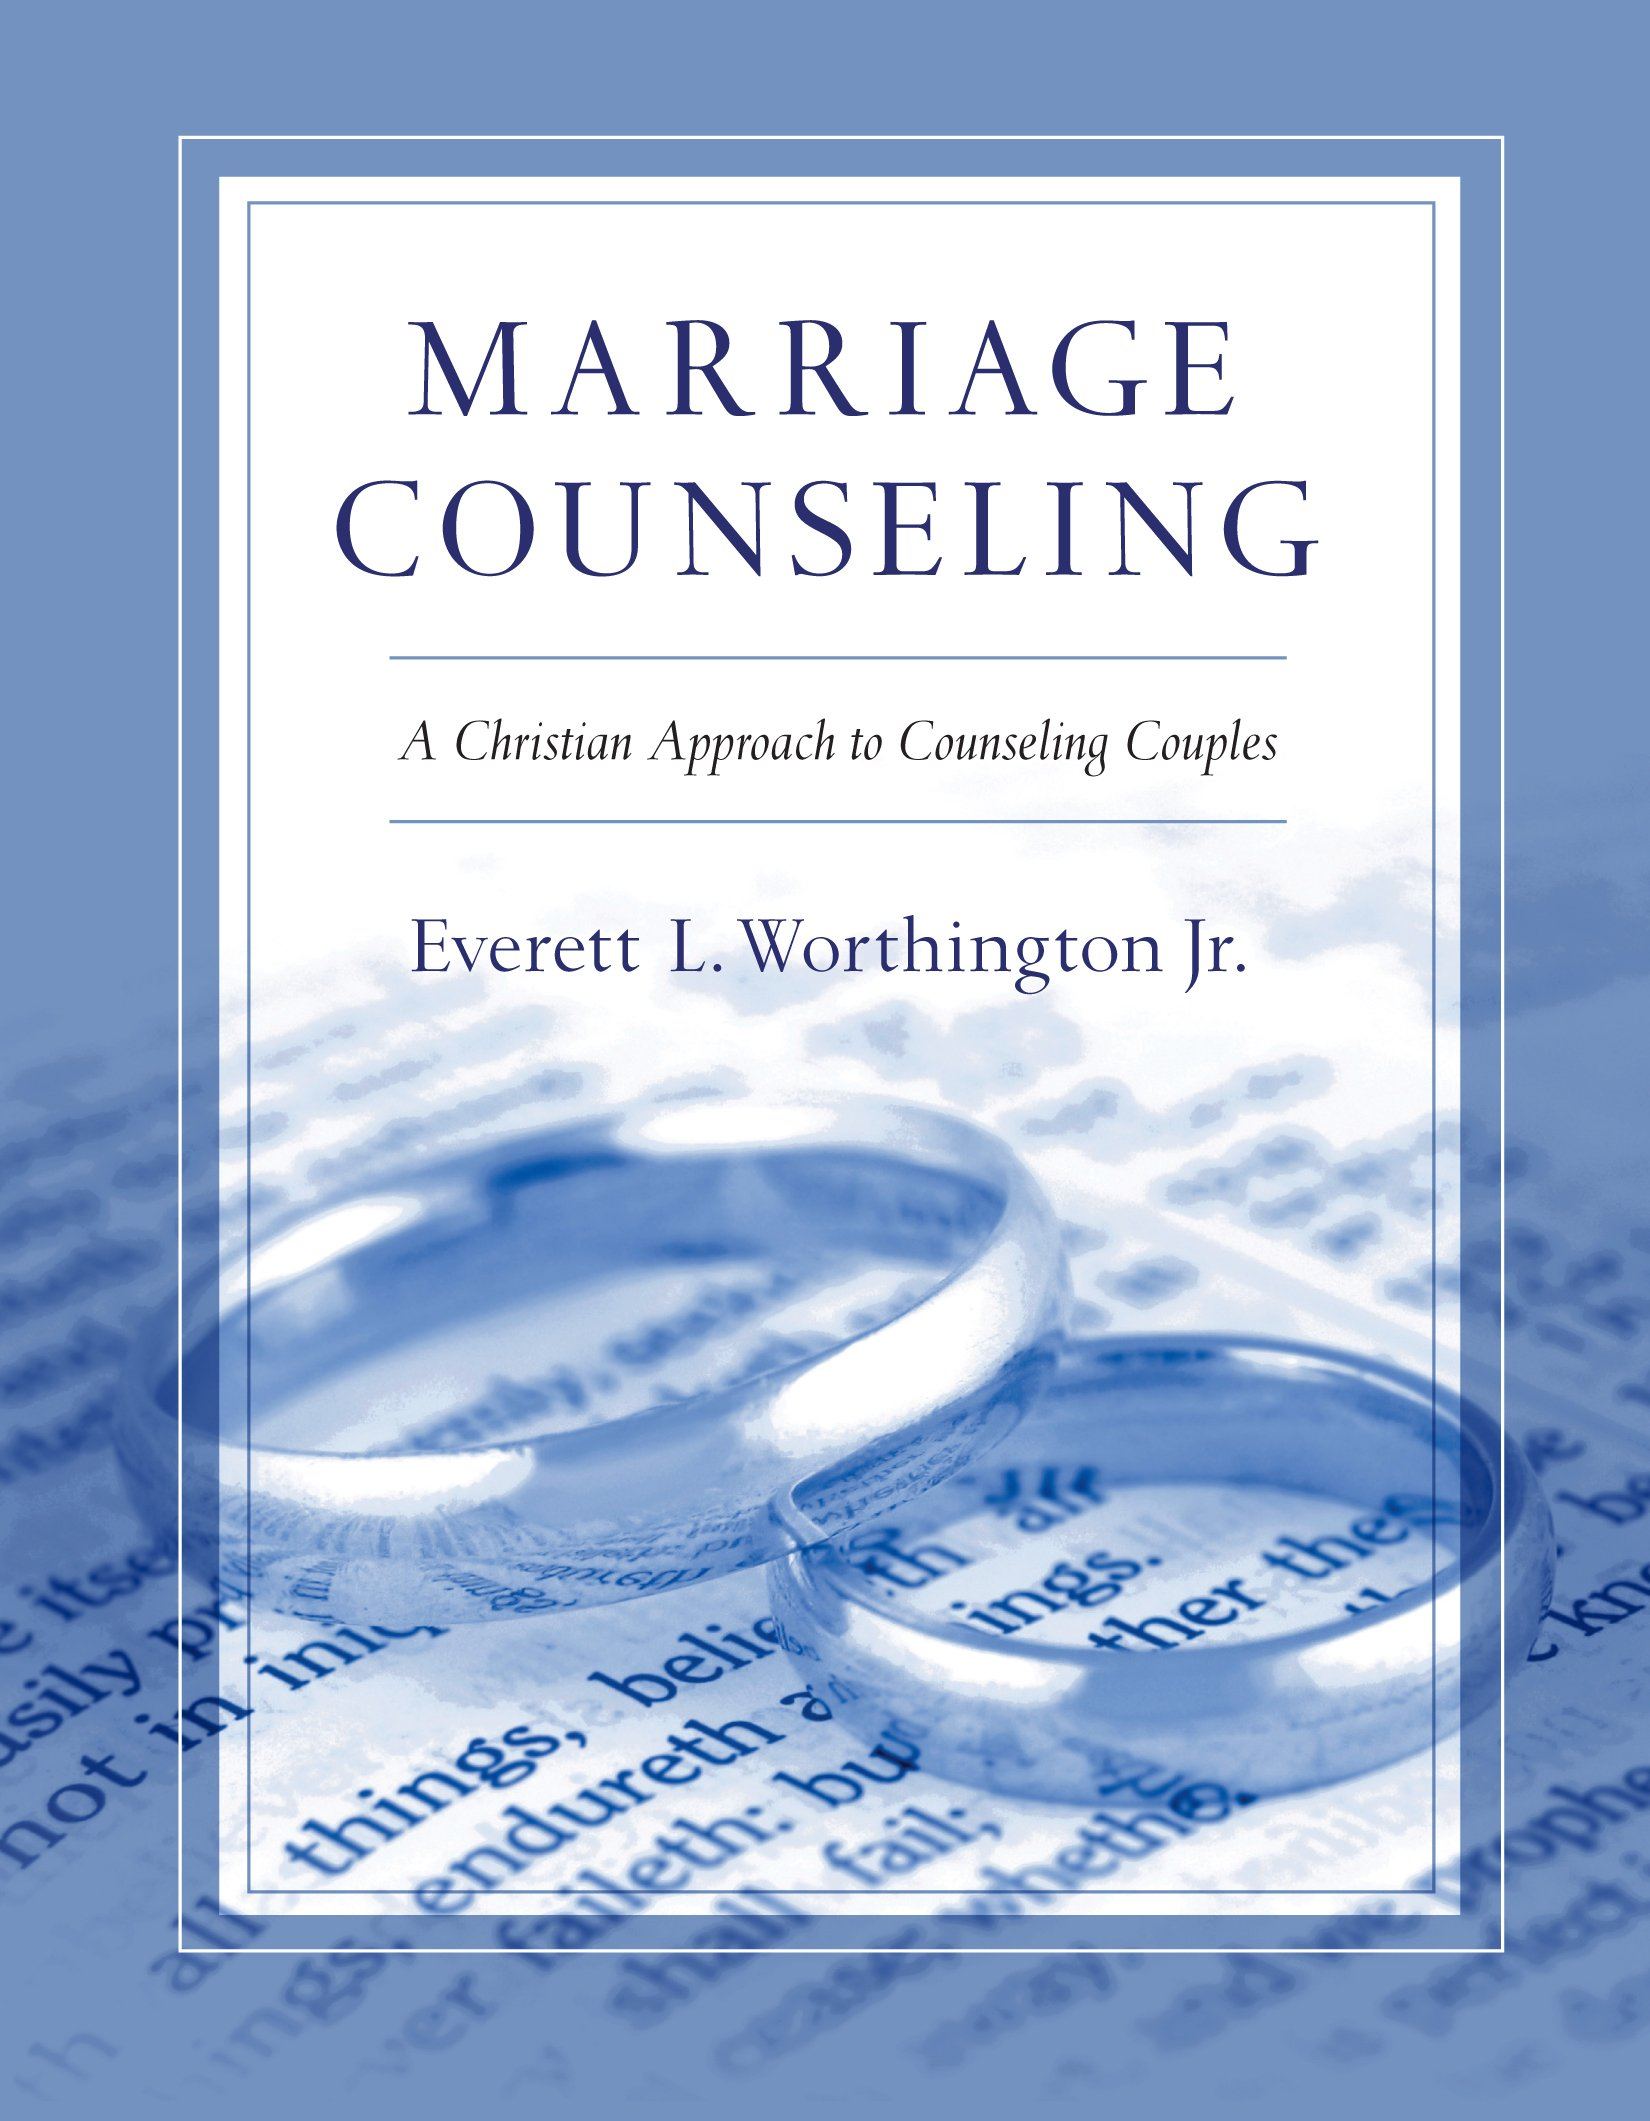 Amazon: Marriage Counseling: A Christian Approach To Counseling Couples  (9780830817696): Everett L Worthington Jr: Books